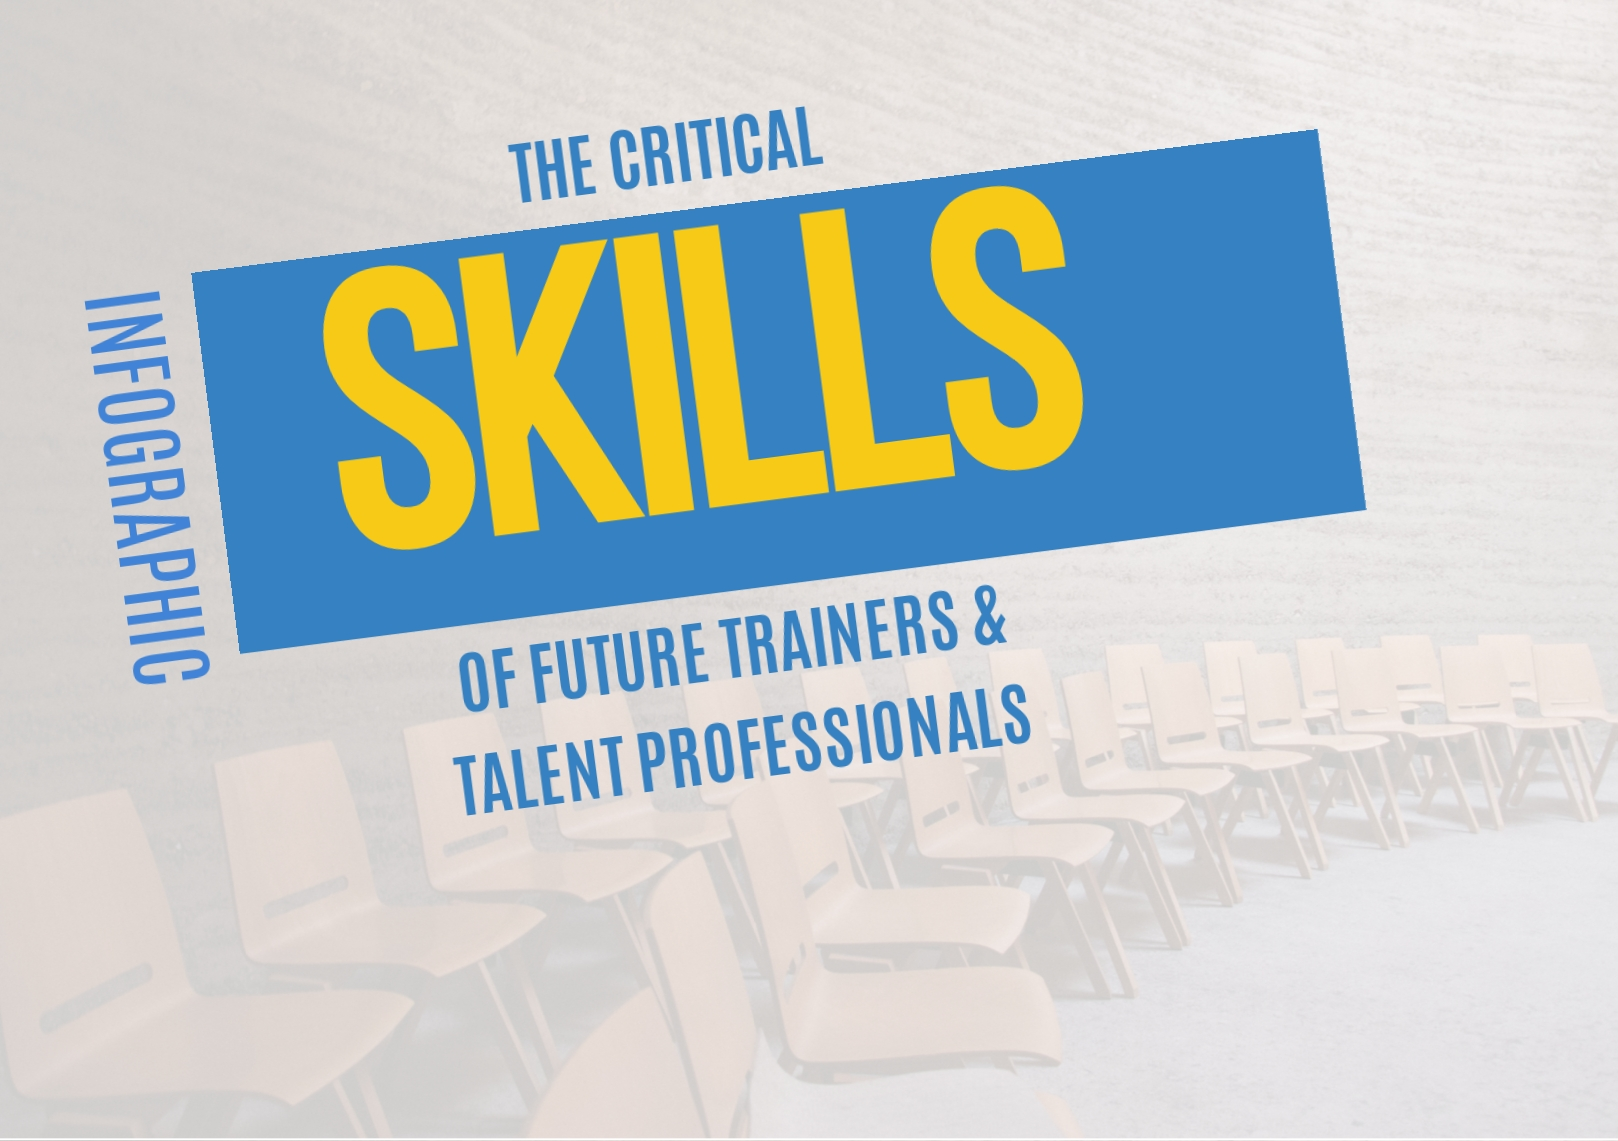 Future skills for talent professionals